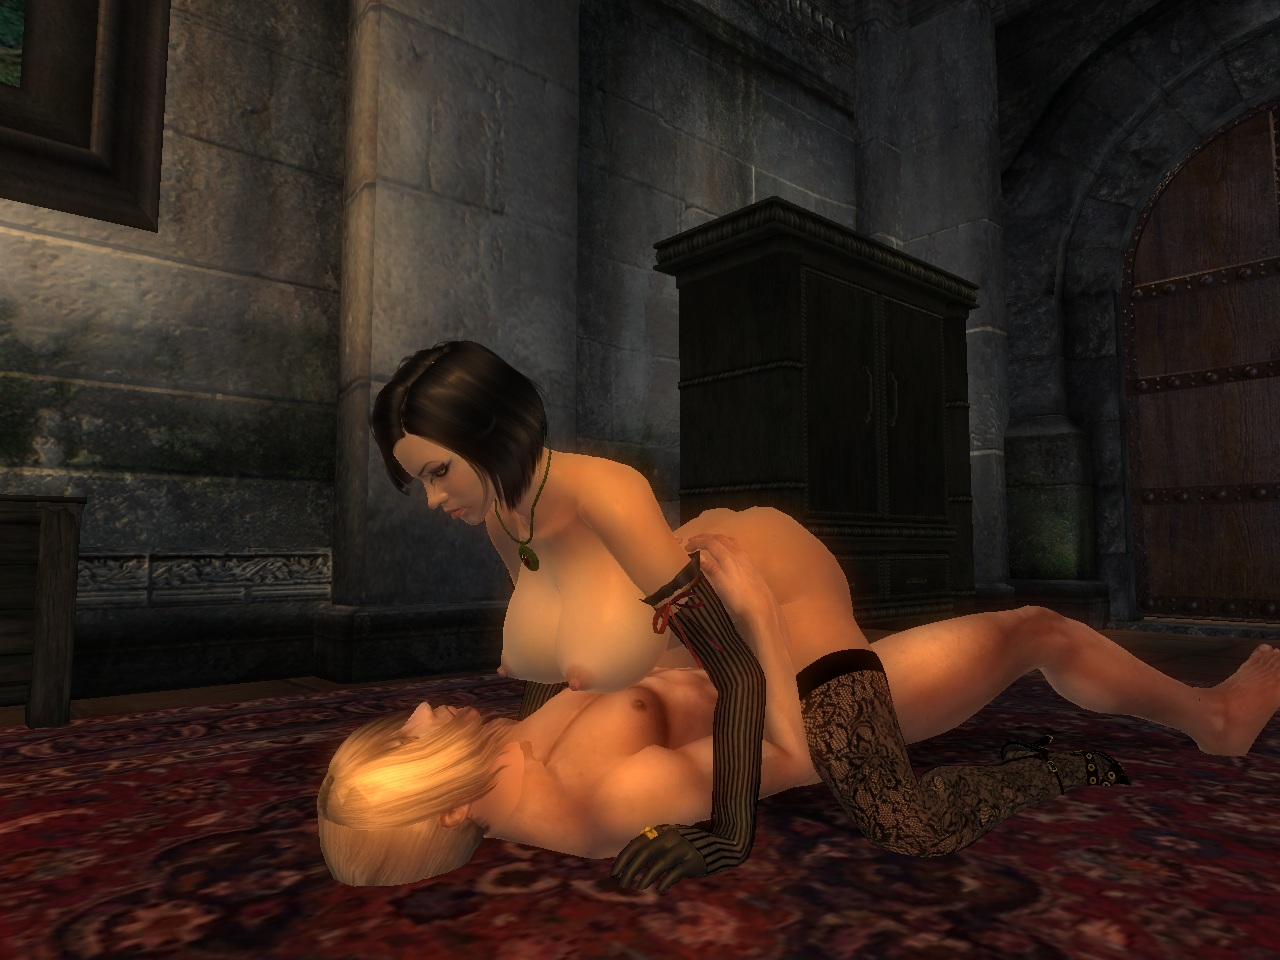 Oblivion sex animation pornos hoe